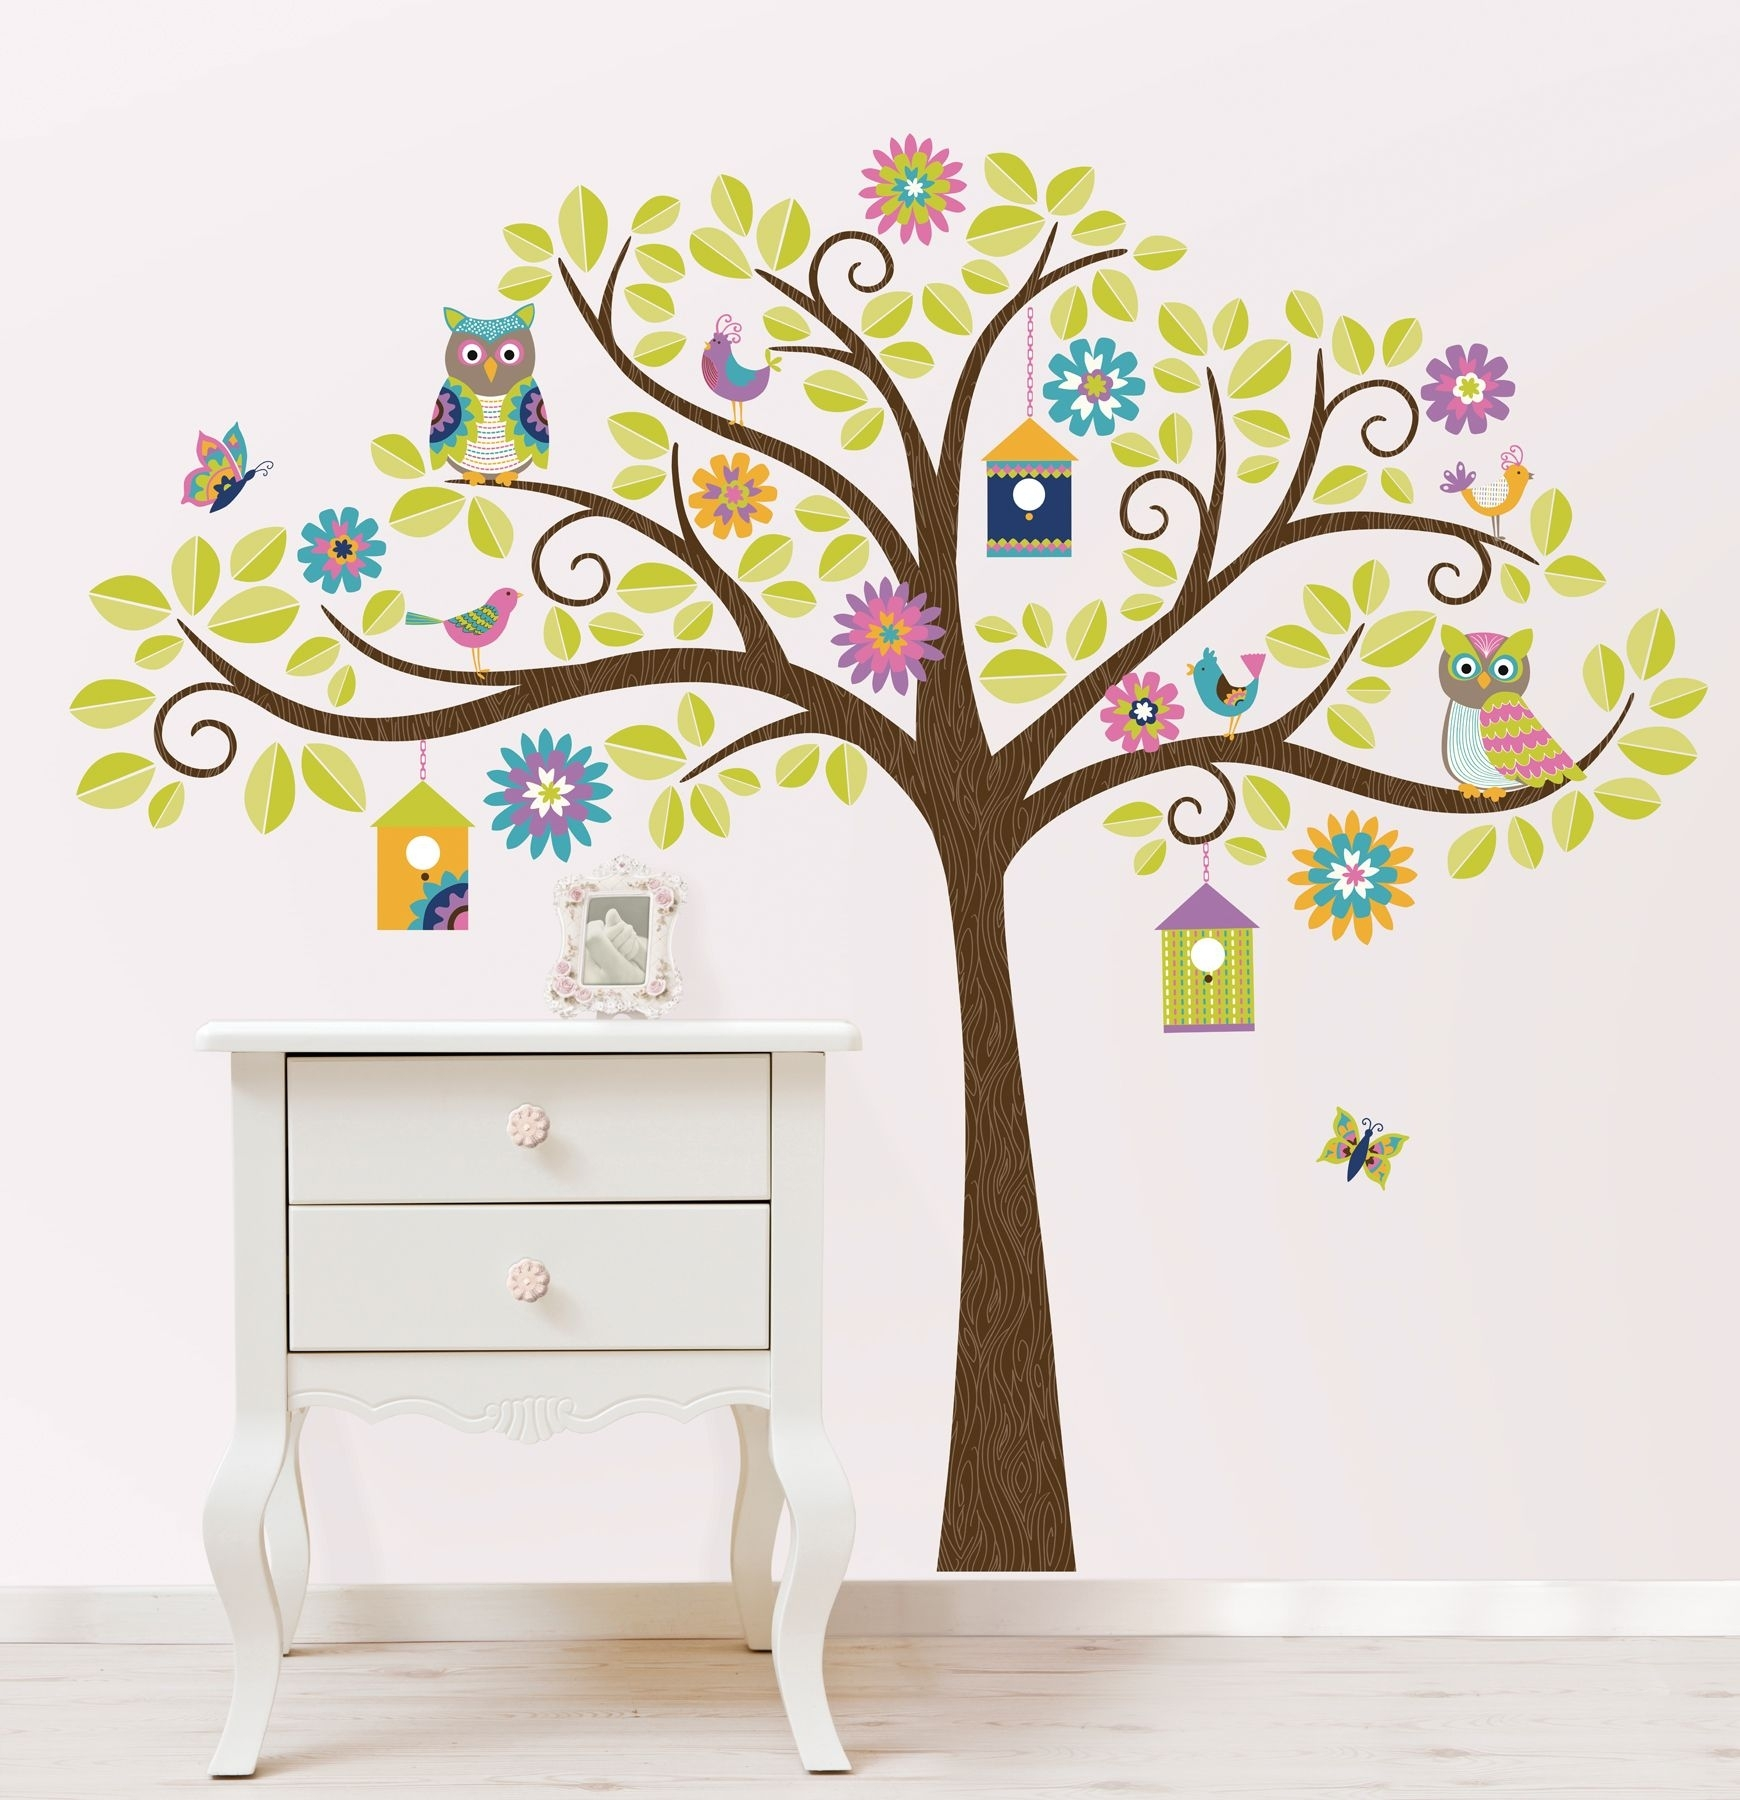 Hoot And Hang Out Tree Wall Art Sticker Kit Inside 2017 Tree Wall Art (Gallery 11 of 15)